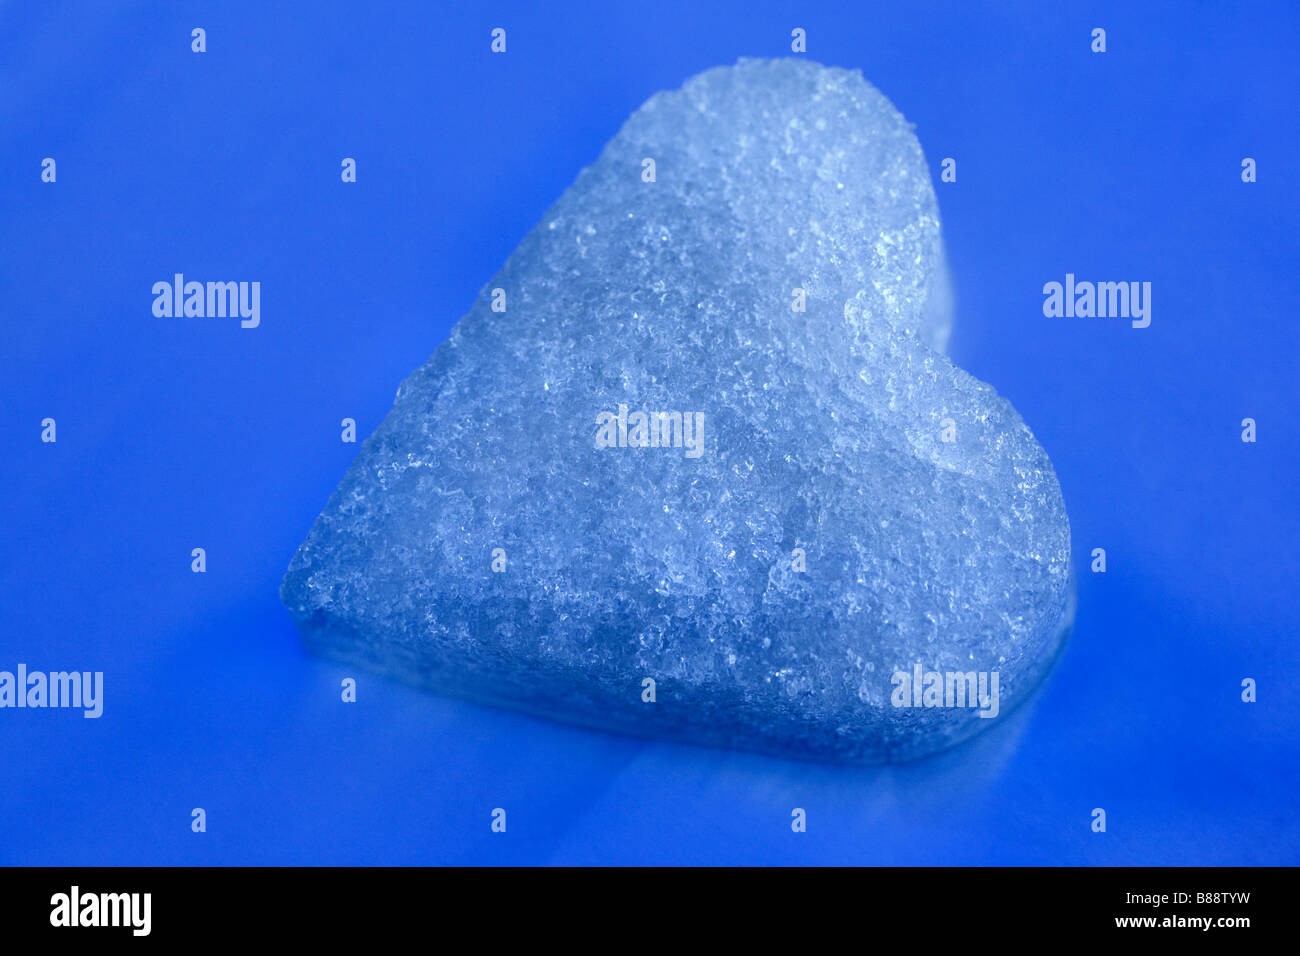 A heart of ice. - Stock Image